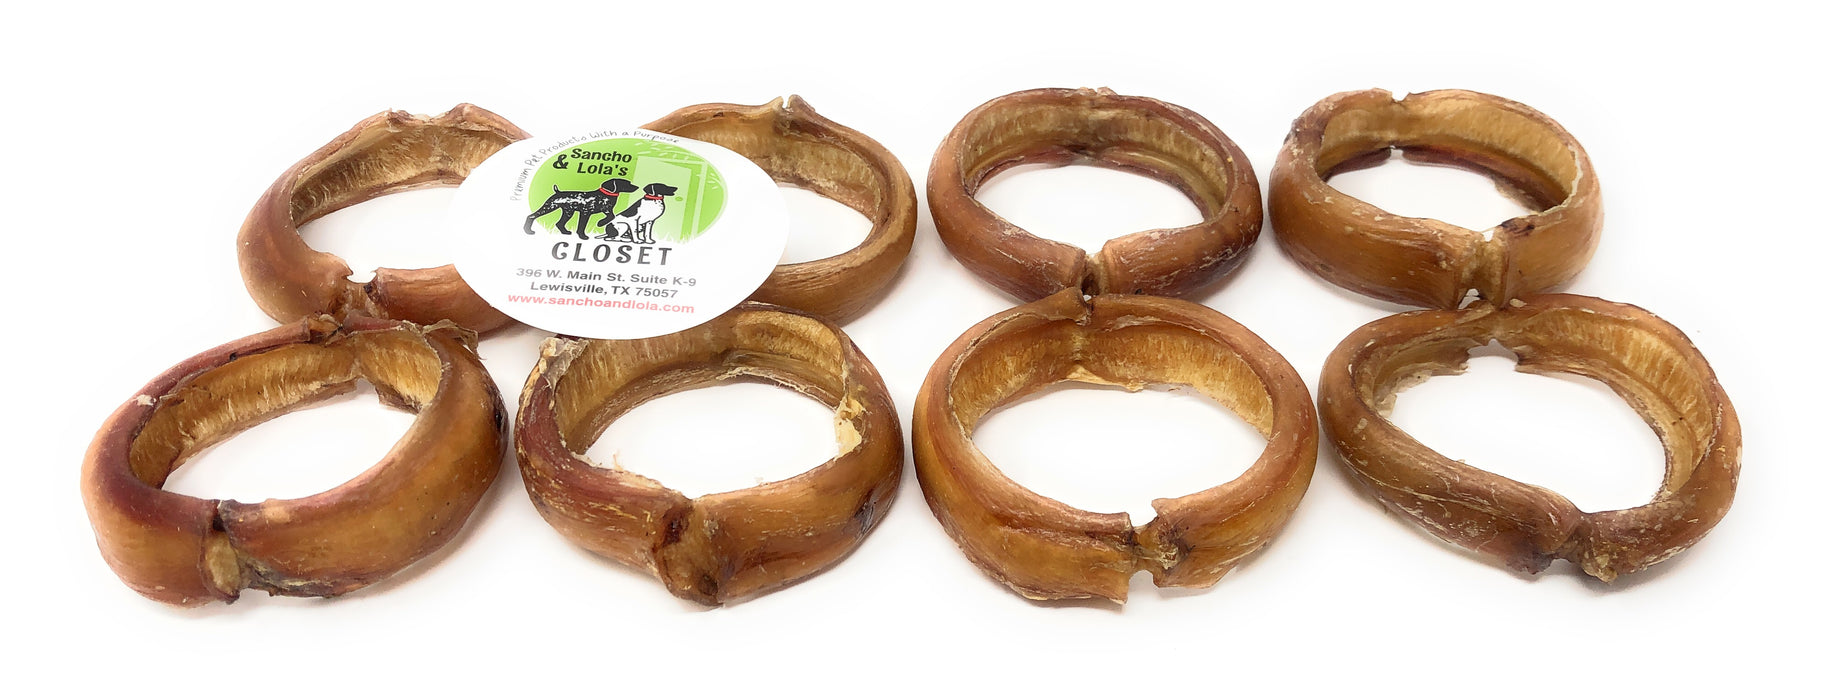 "Gourmet 3"" Gentle Beef Bully Rings - moderate odor"